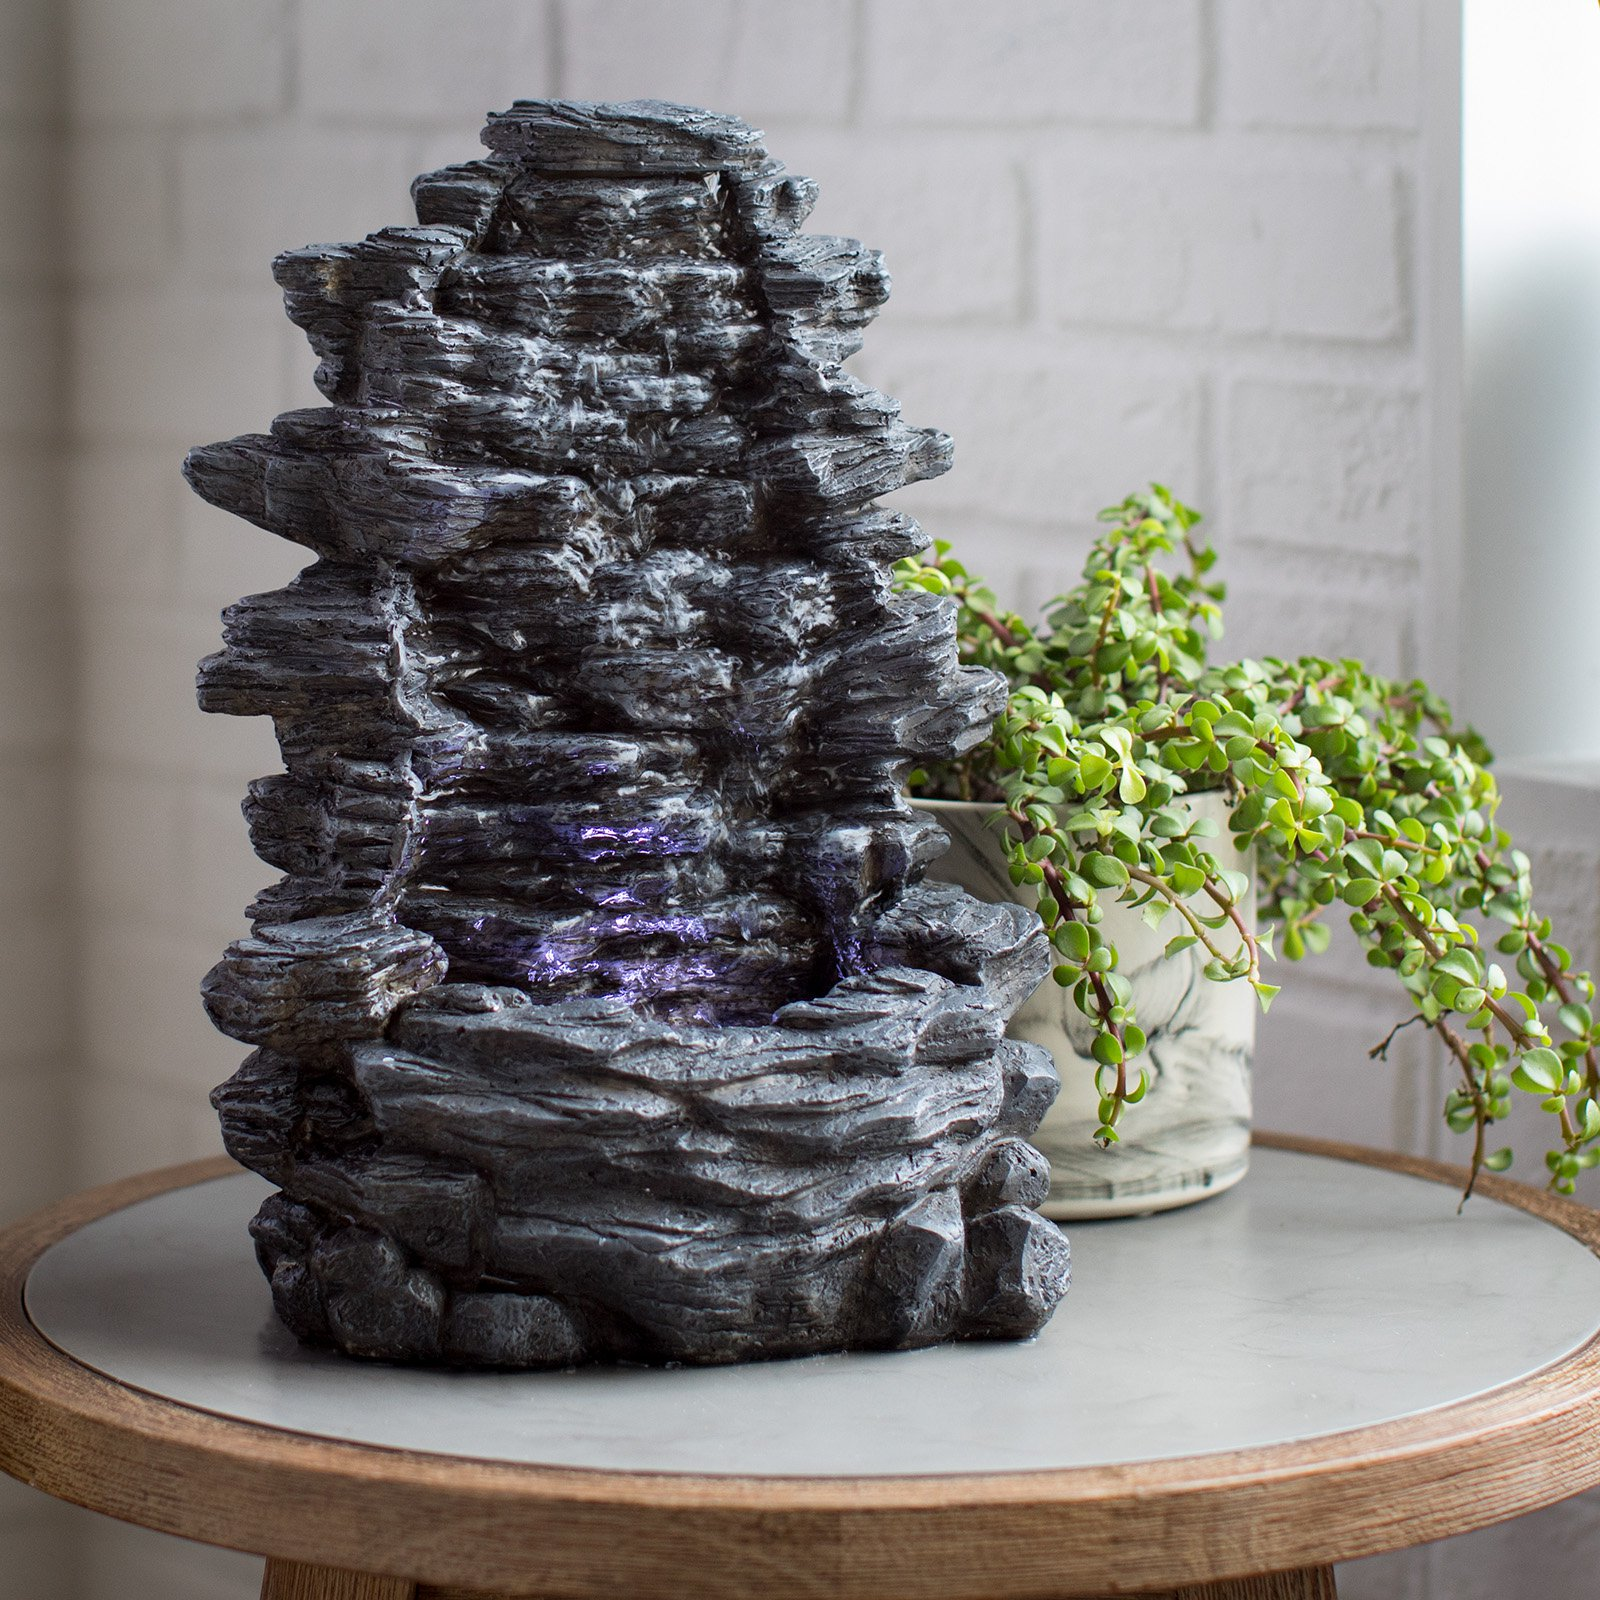 Belham Living Hudson Rock Table Top Fountain